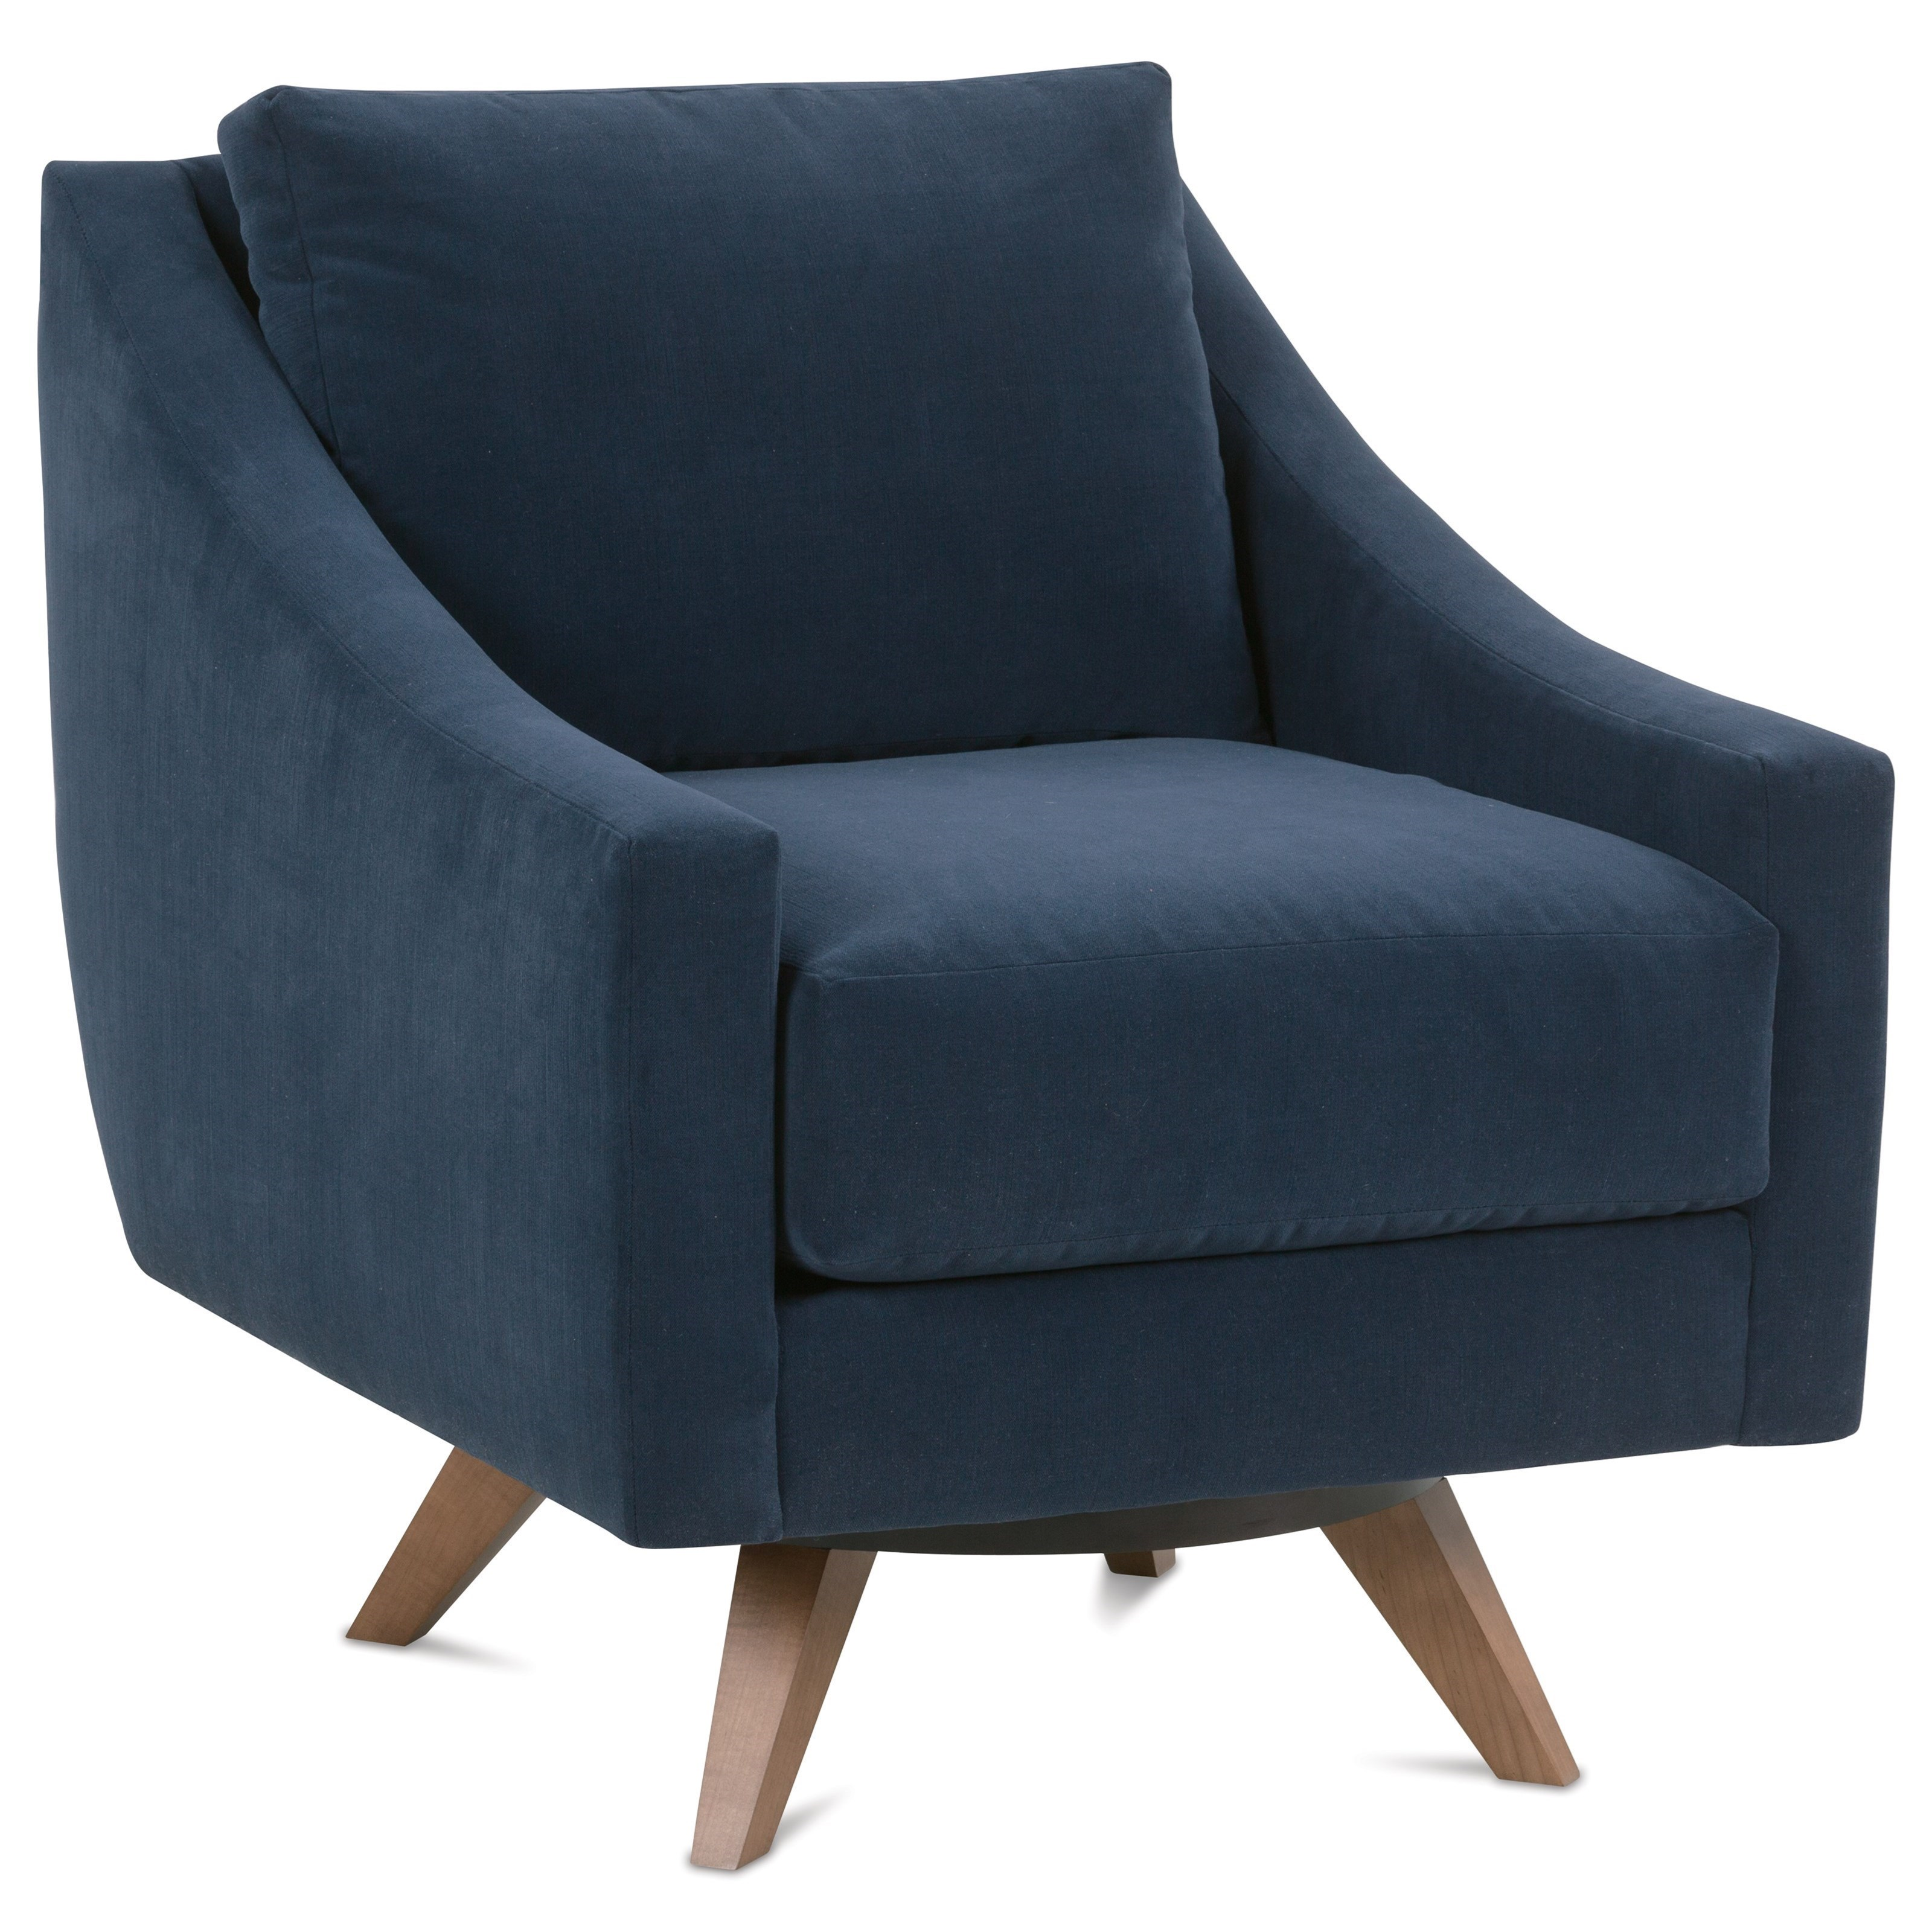 comfortable swivel chair how to make covers for a party rowe nash contemporary steger s furniture